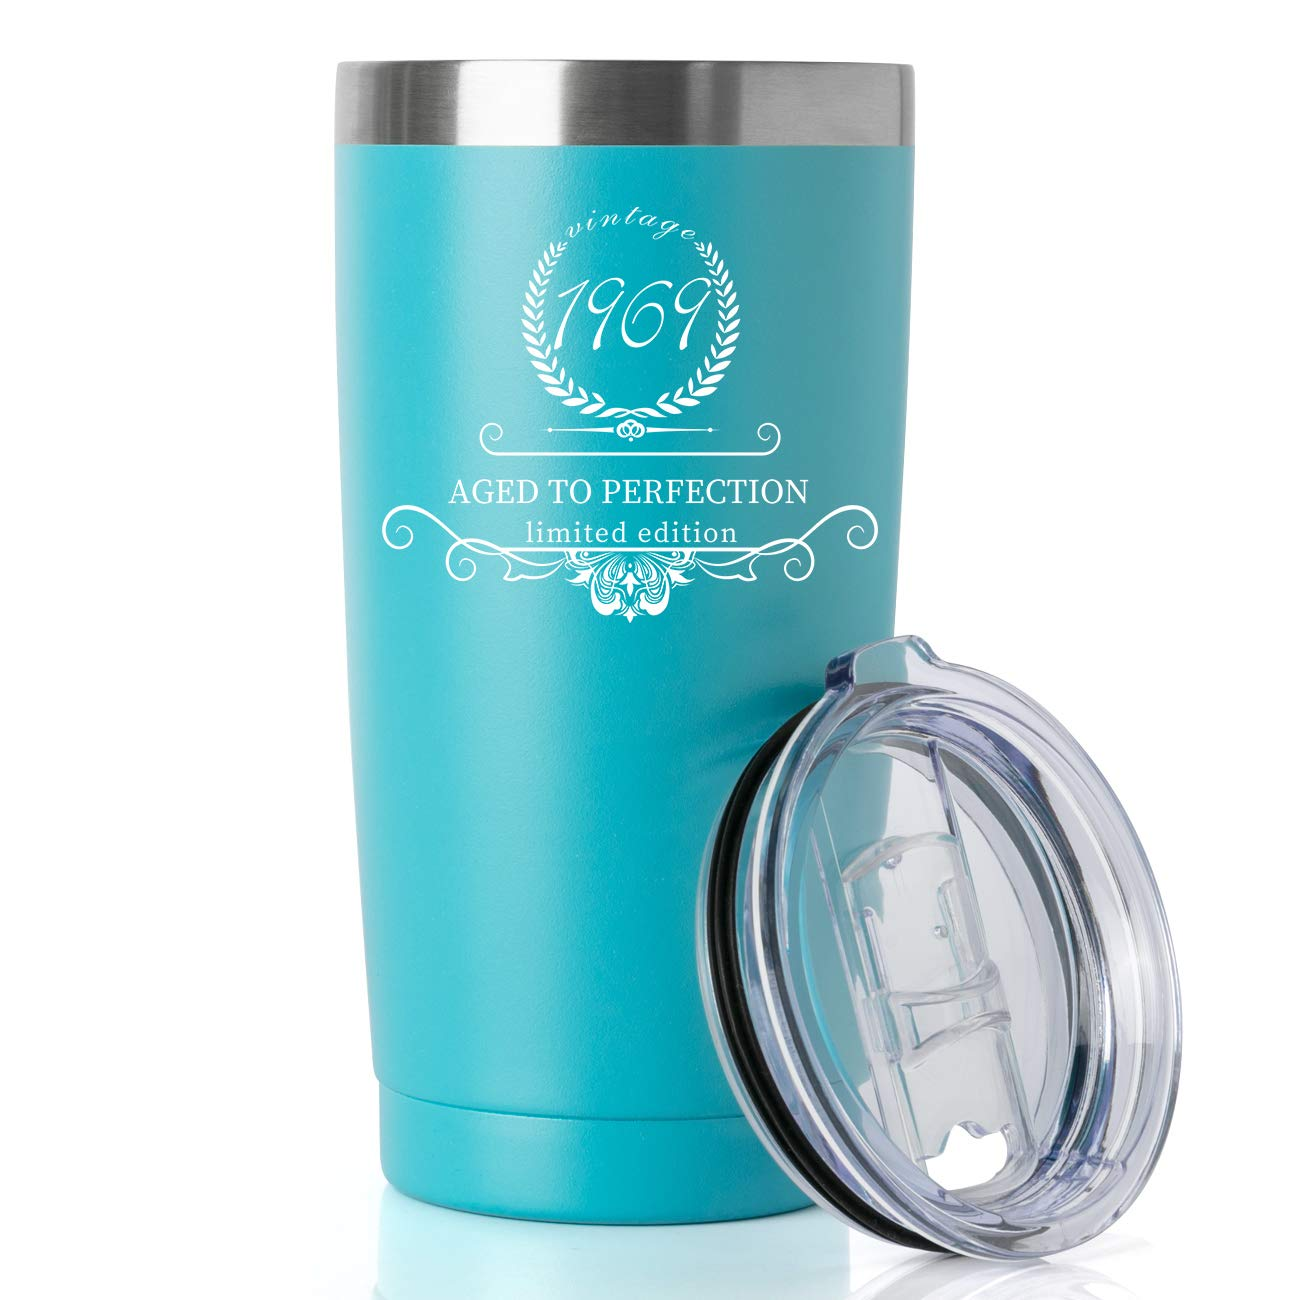 1969 50th Birthday Gifts for Women and Men Tumbler, Party 50th birthday decorations, Best Anniversary Presents Ideas Him Her Husband Wife Mom Dad, 20oz Stainless Steel Tumbler (Turquoise, 1969) by MASVIS